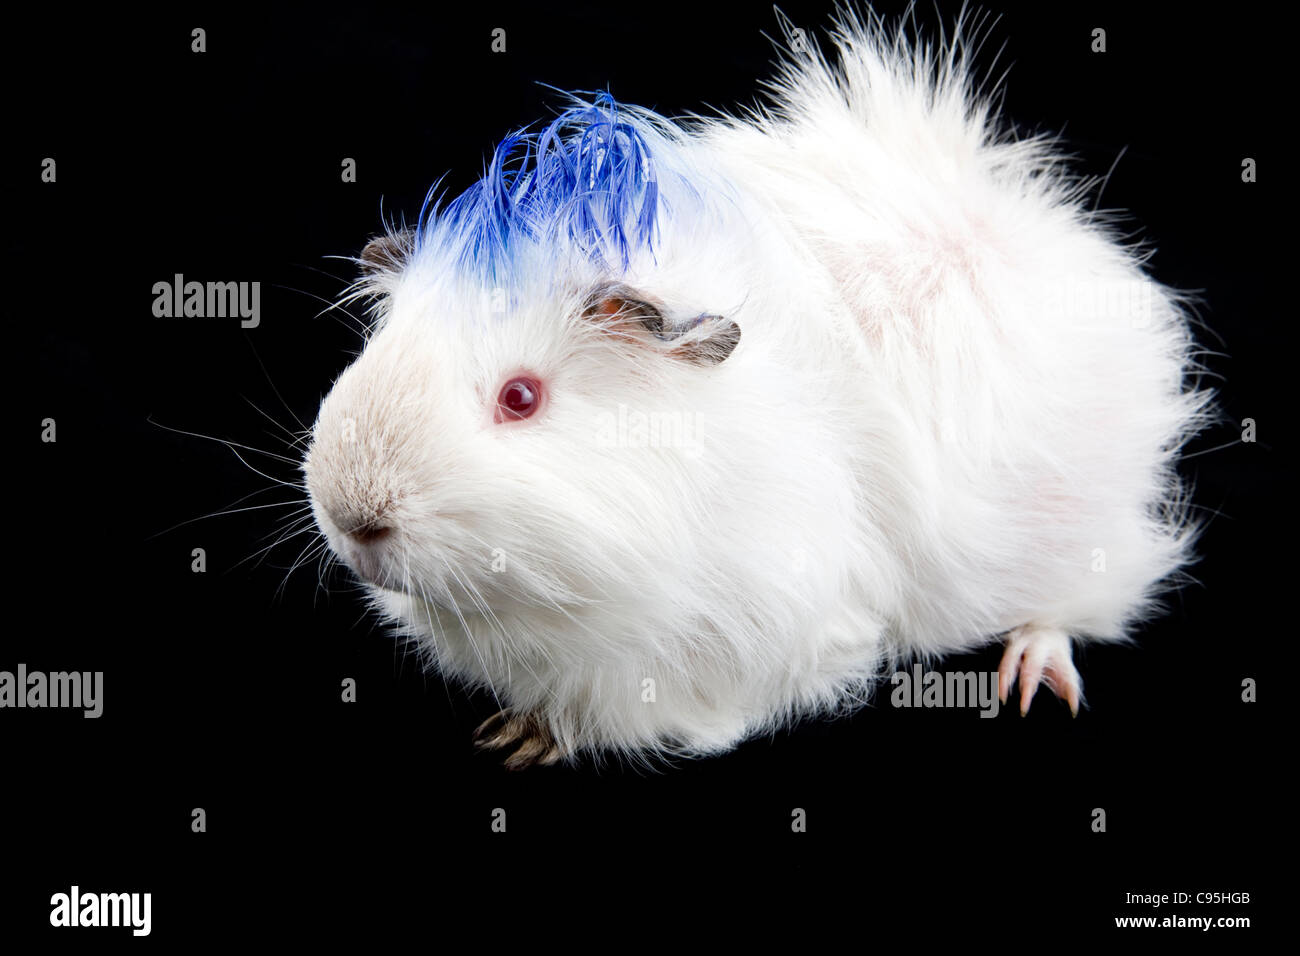 Cute White Albino Guinea Pig With Blue Mohawk Styled Fur